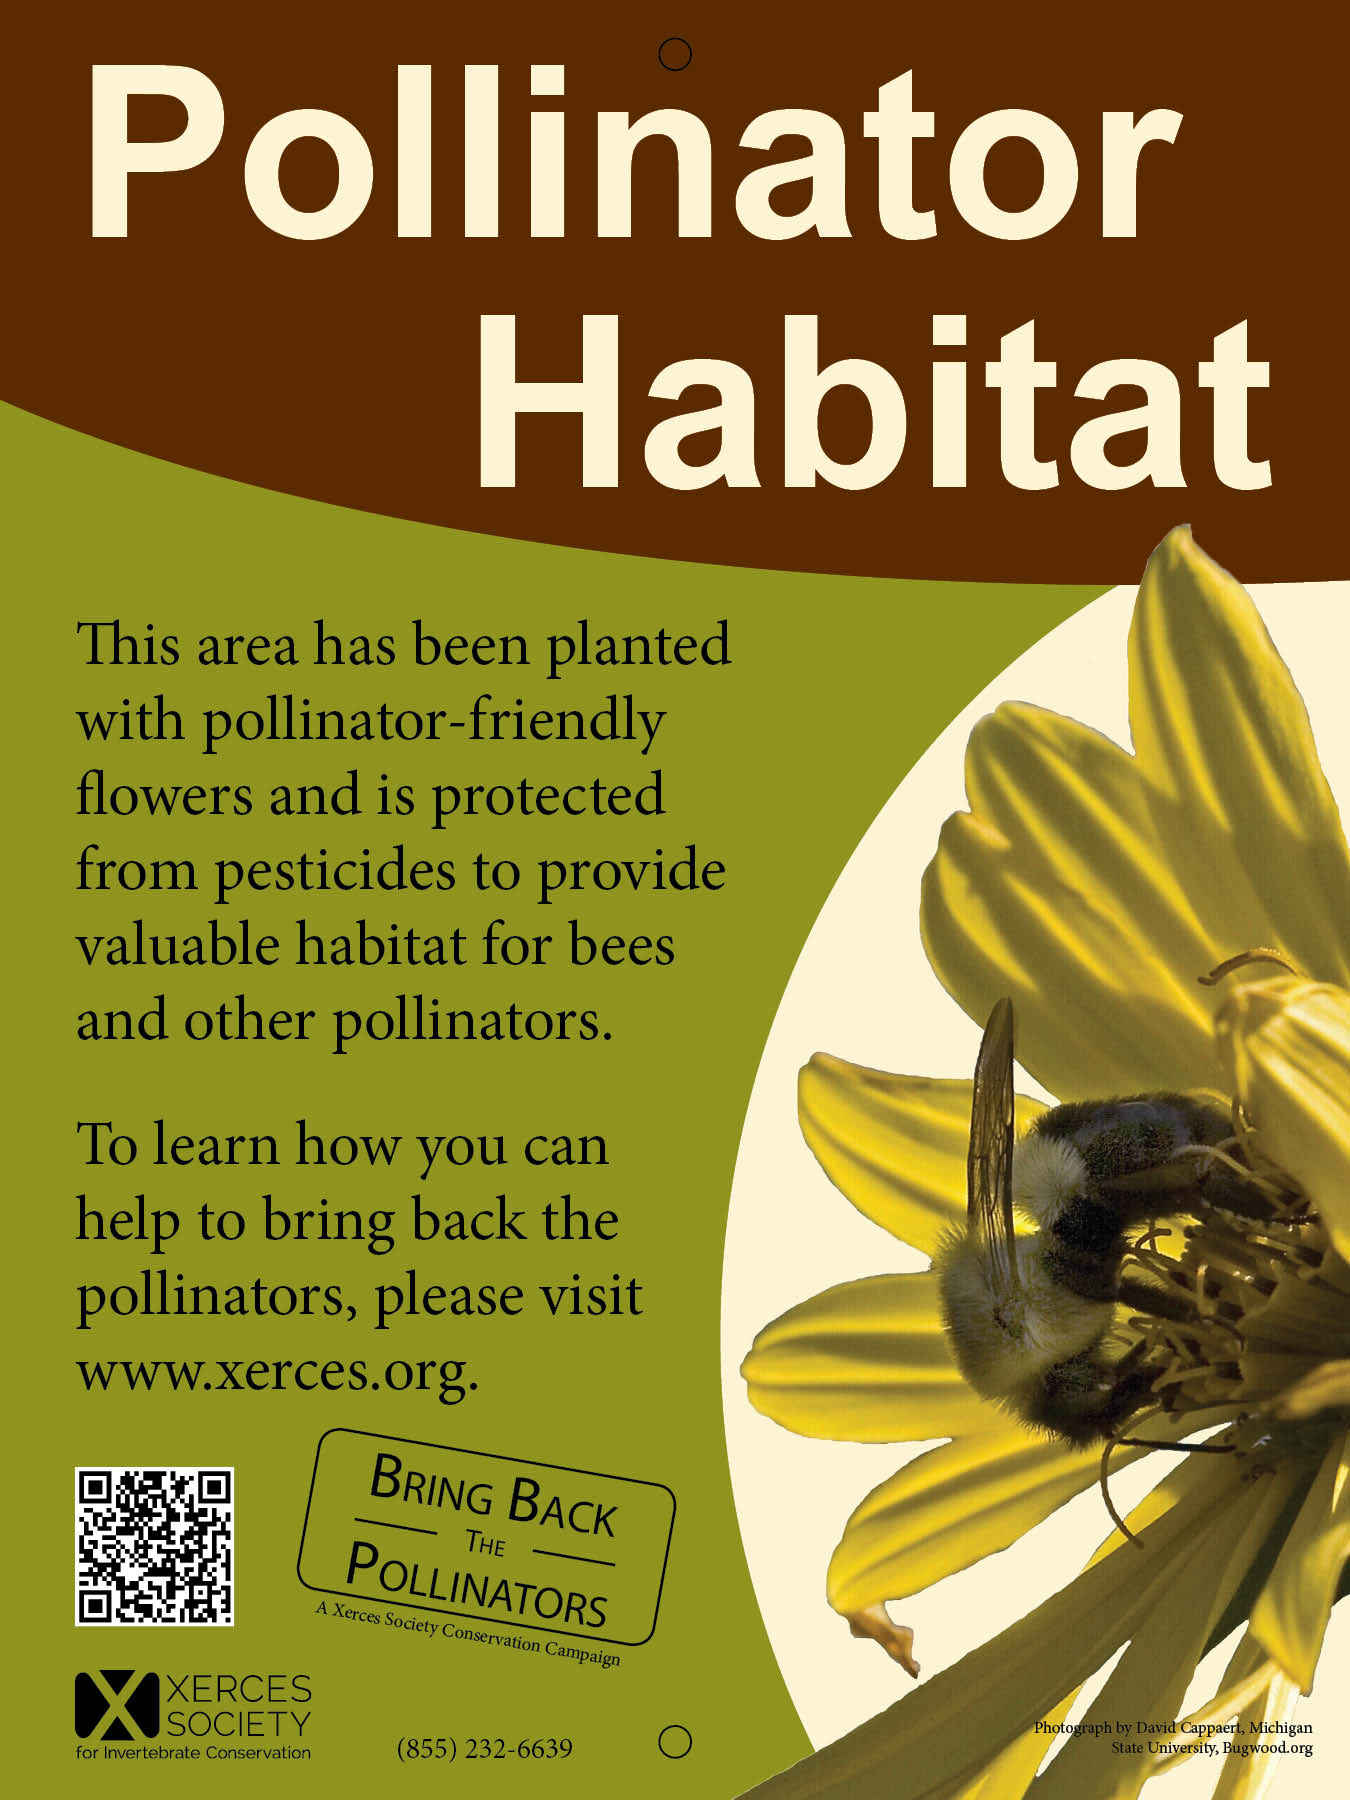 A Xerces Society Pollinator Habitat sign is shown.